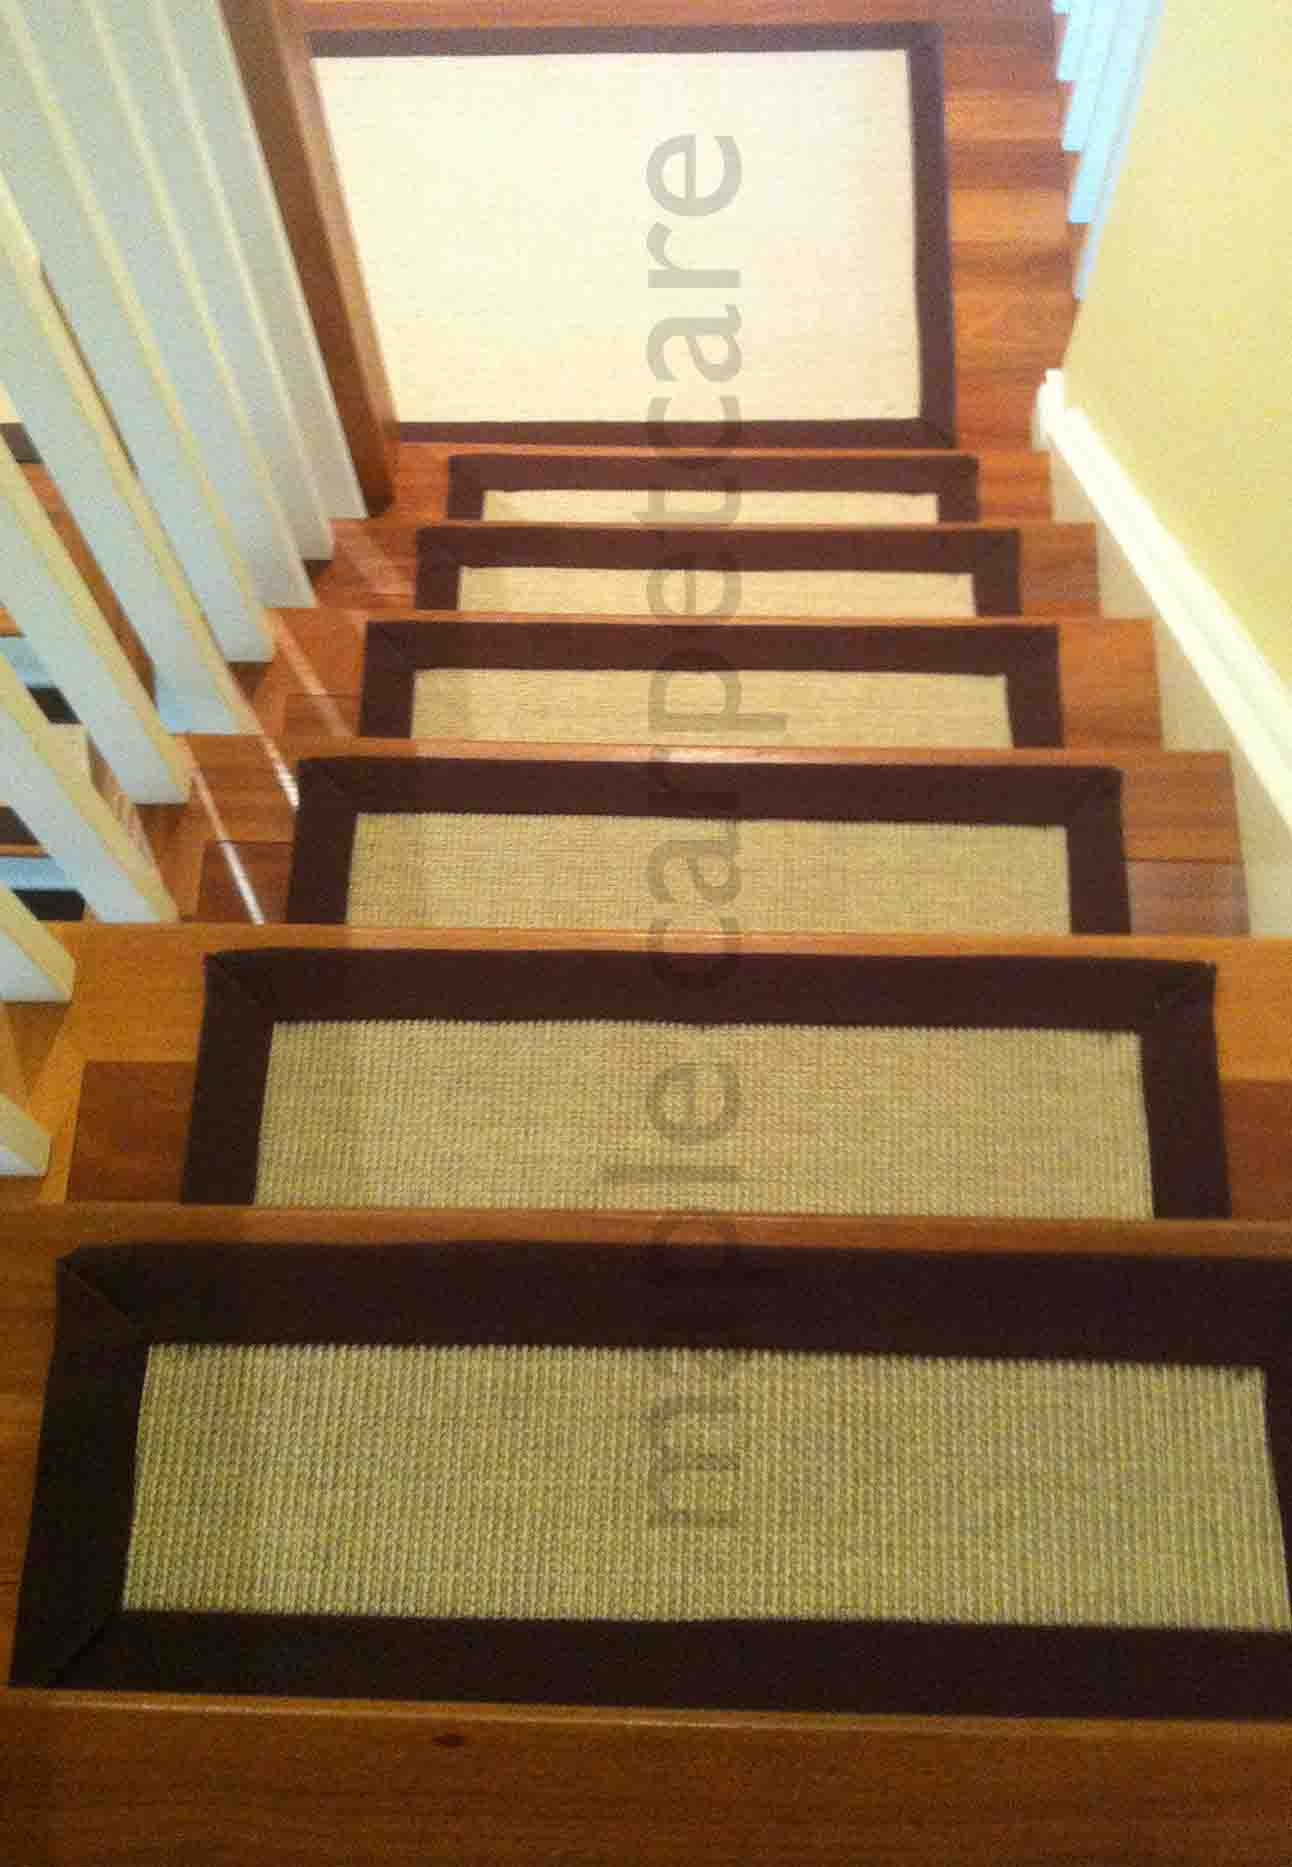 Stair Rugs Rugs For Runners On Stairs Sisal Carpet Laid As Runner Within Stairway Carpet Treads (Image 14 of 15)